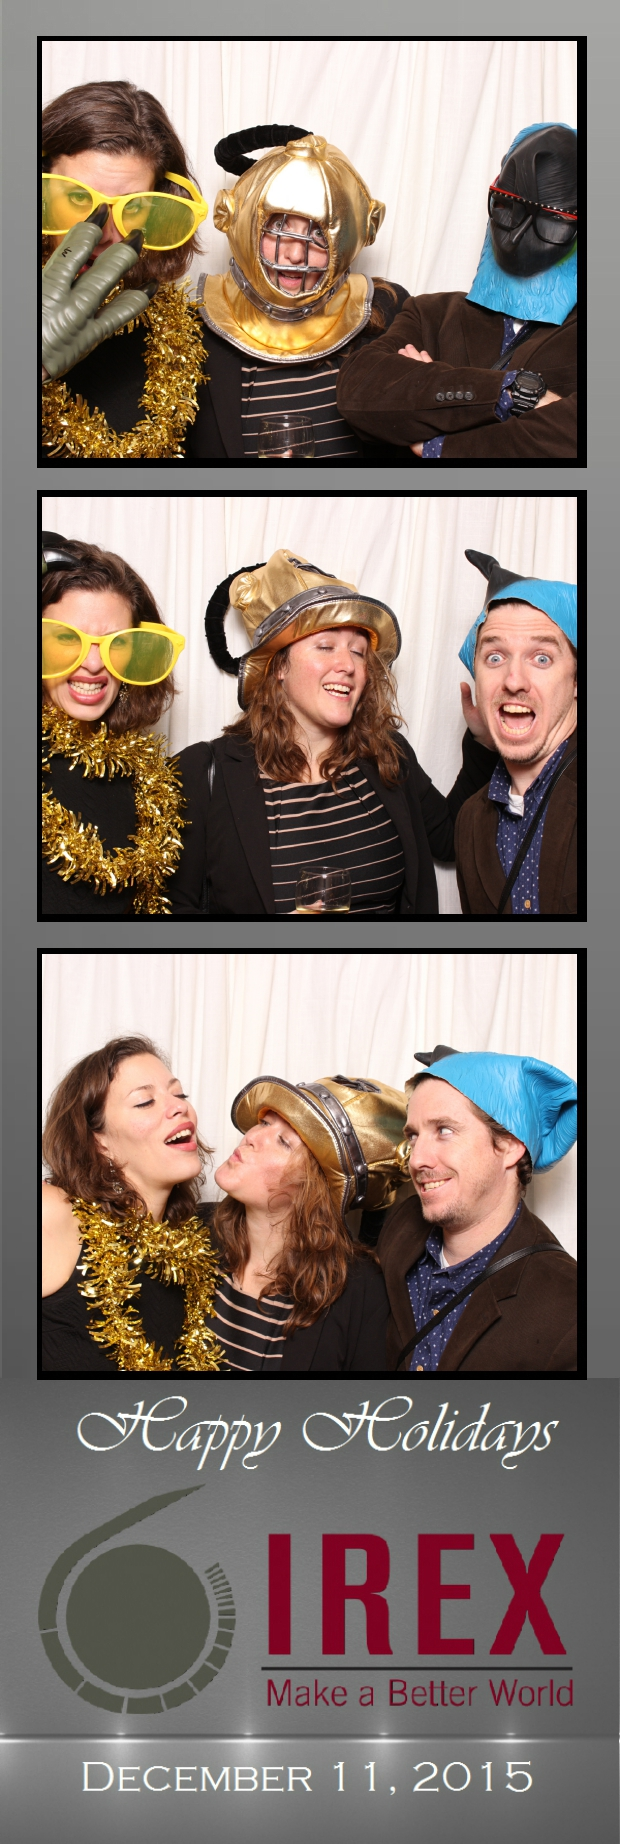 Guest House Events Photo Booth Strips IREX (91).jpg